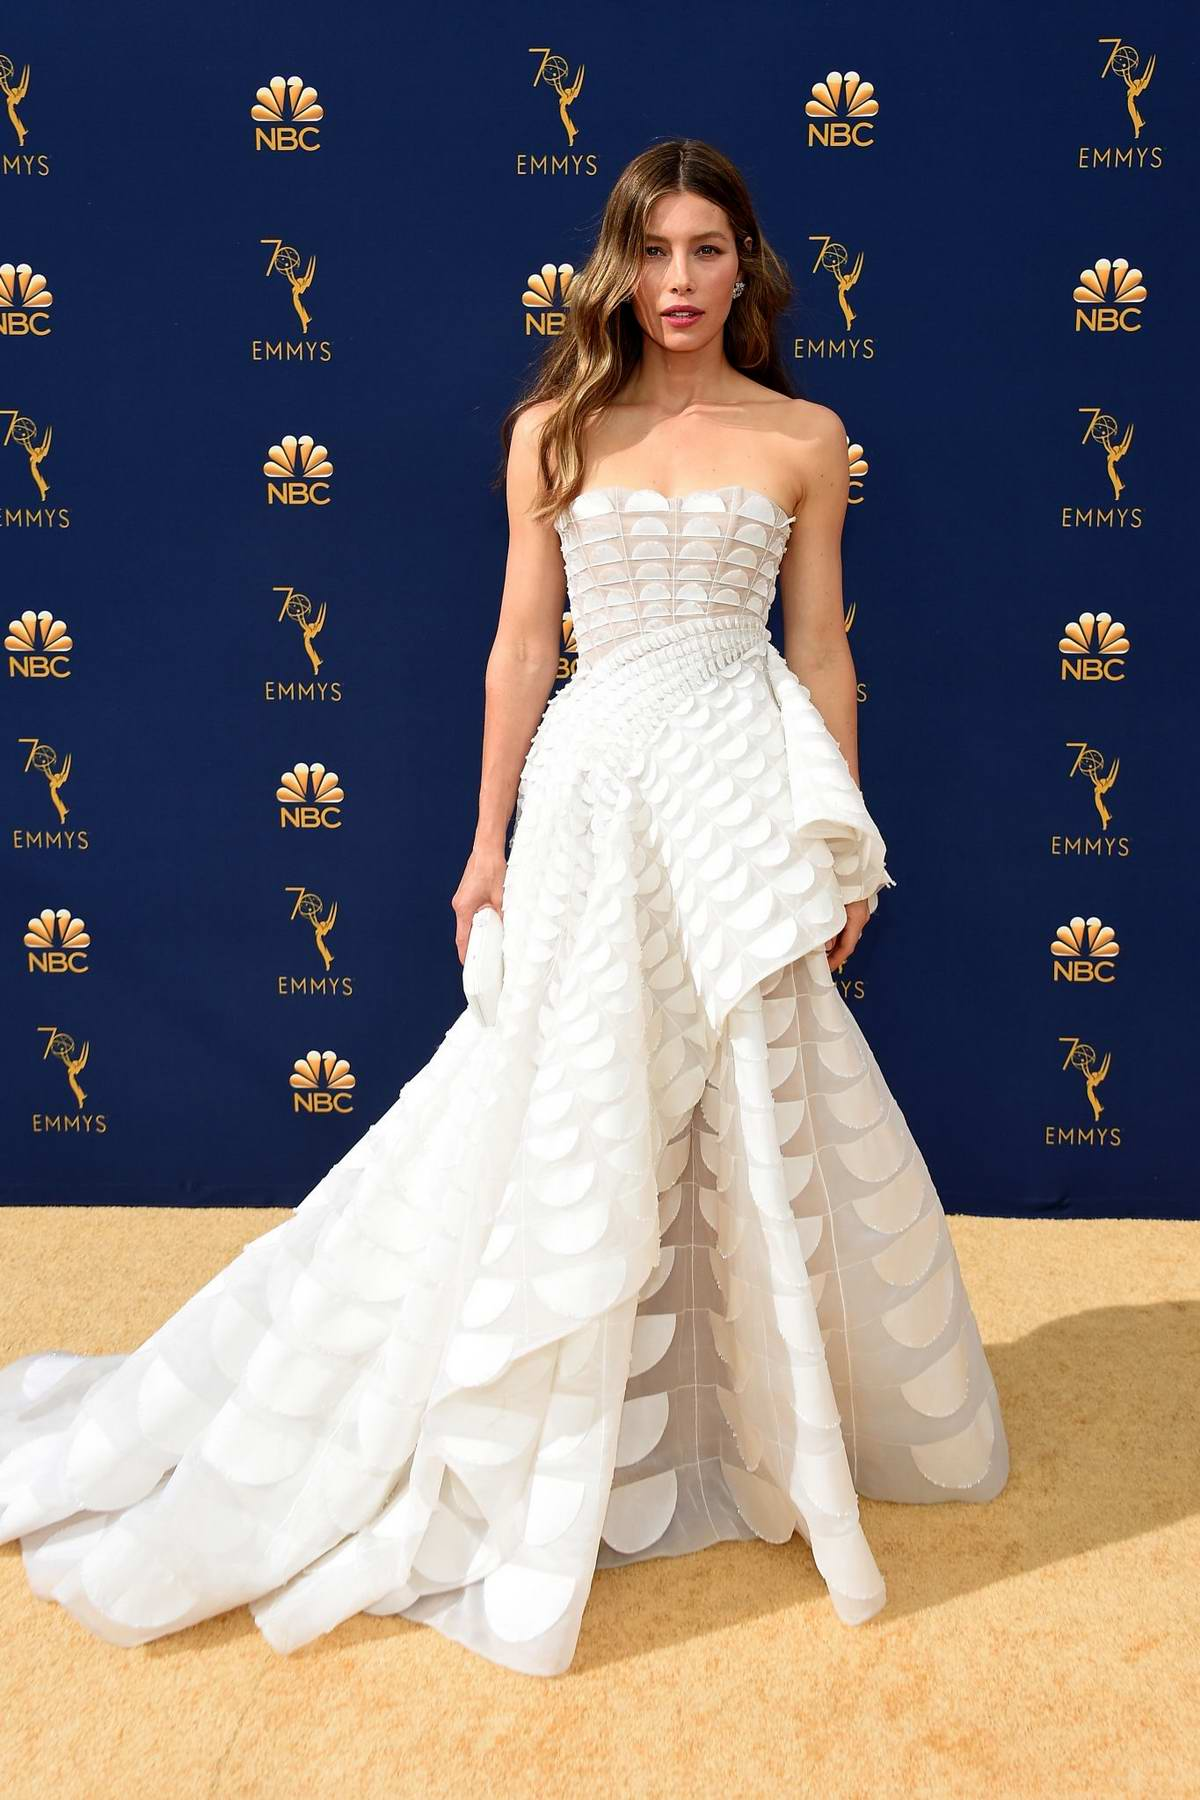 Jessica Biel and Justin Timberlake attends the 70th Primetime EMMY Awards (EMMYS 2018) at Microsoft Theater in Los Angeles